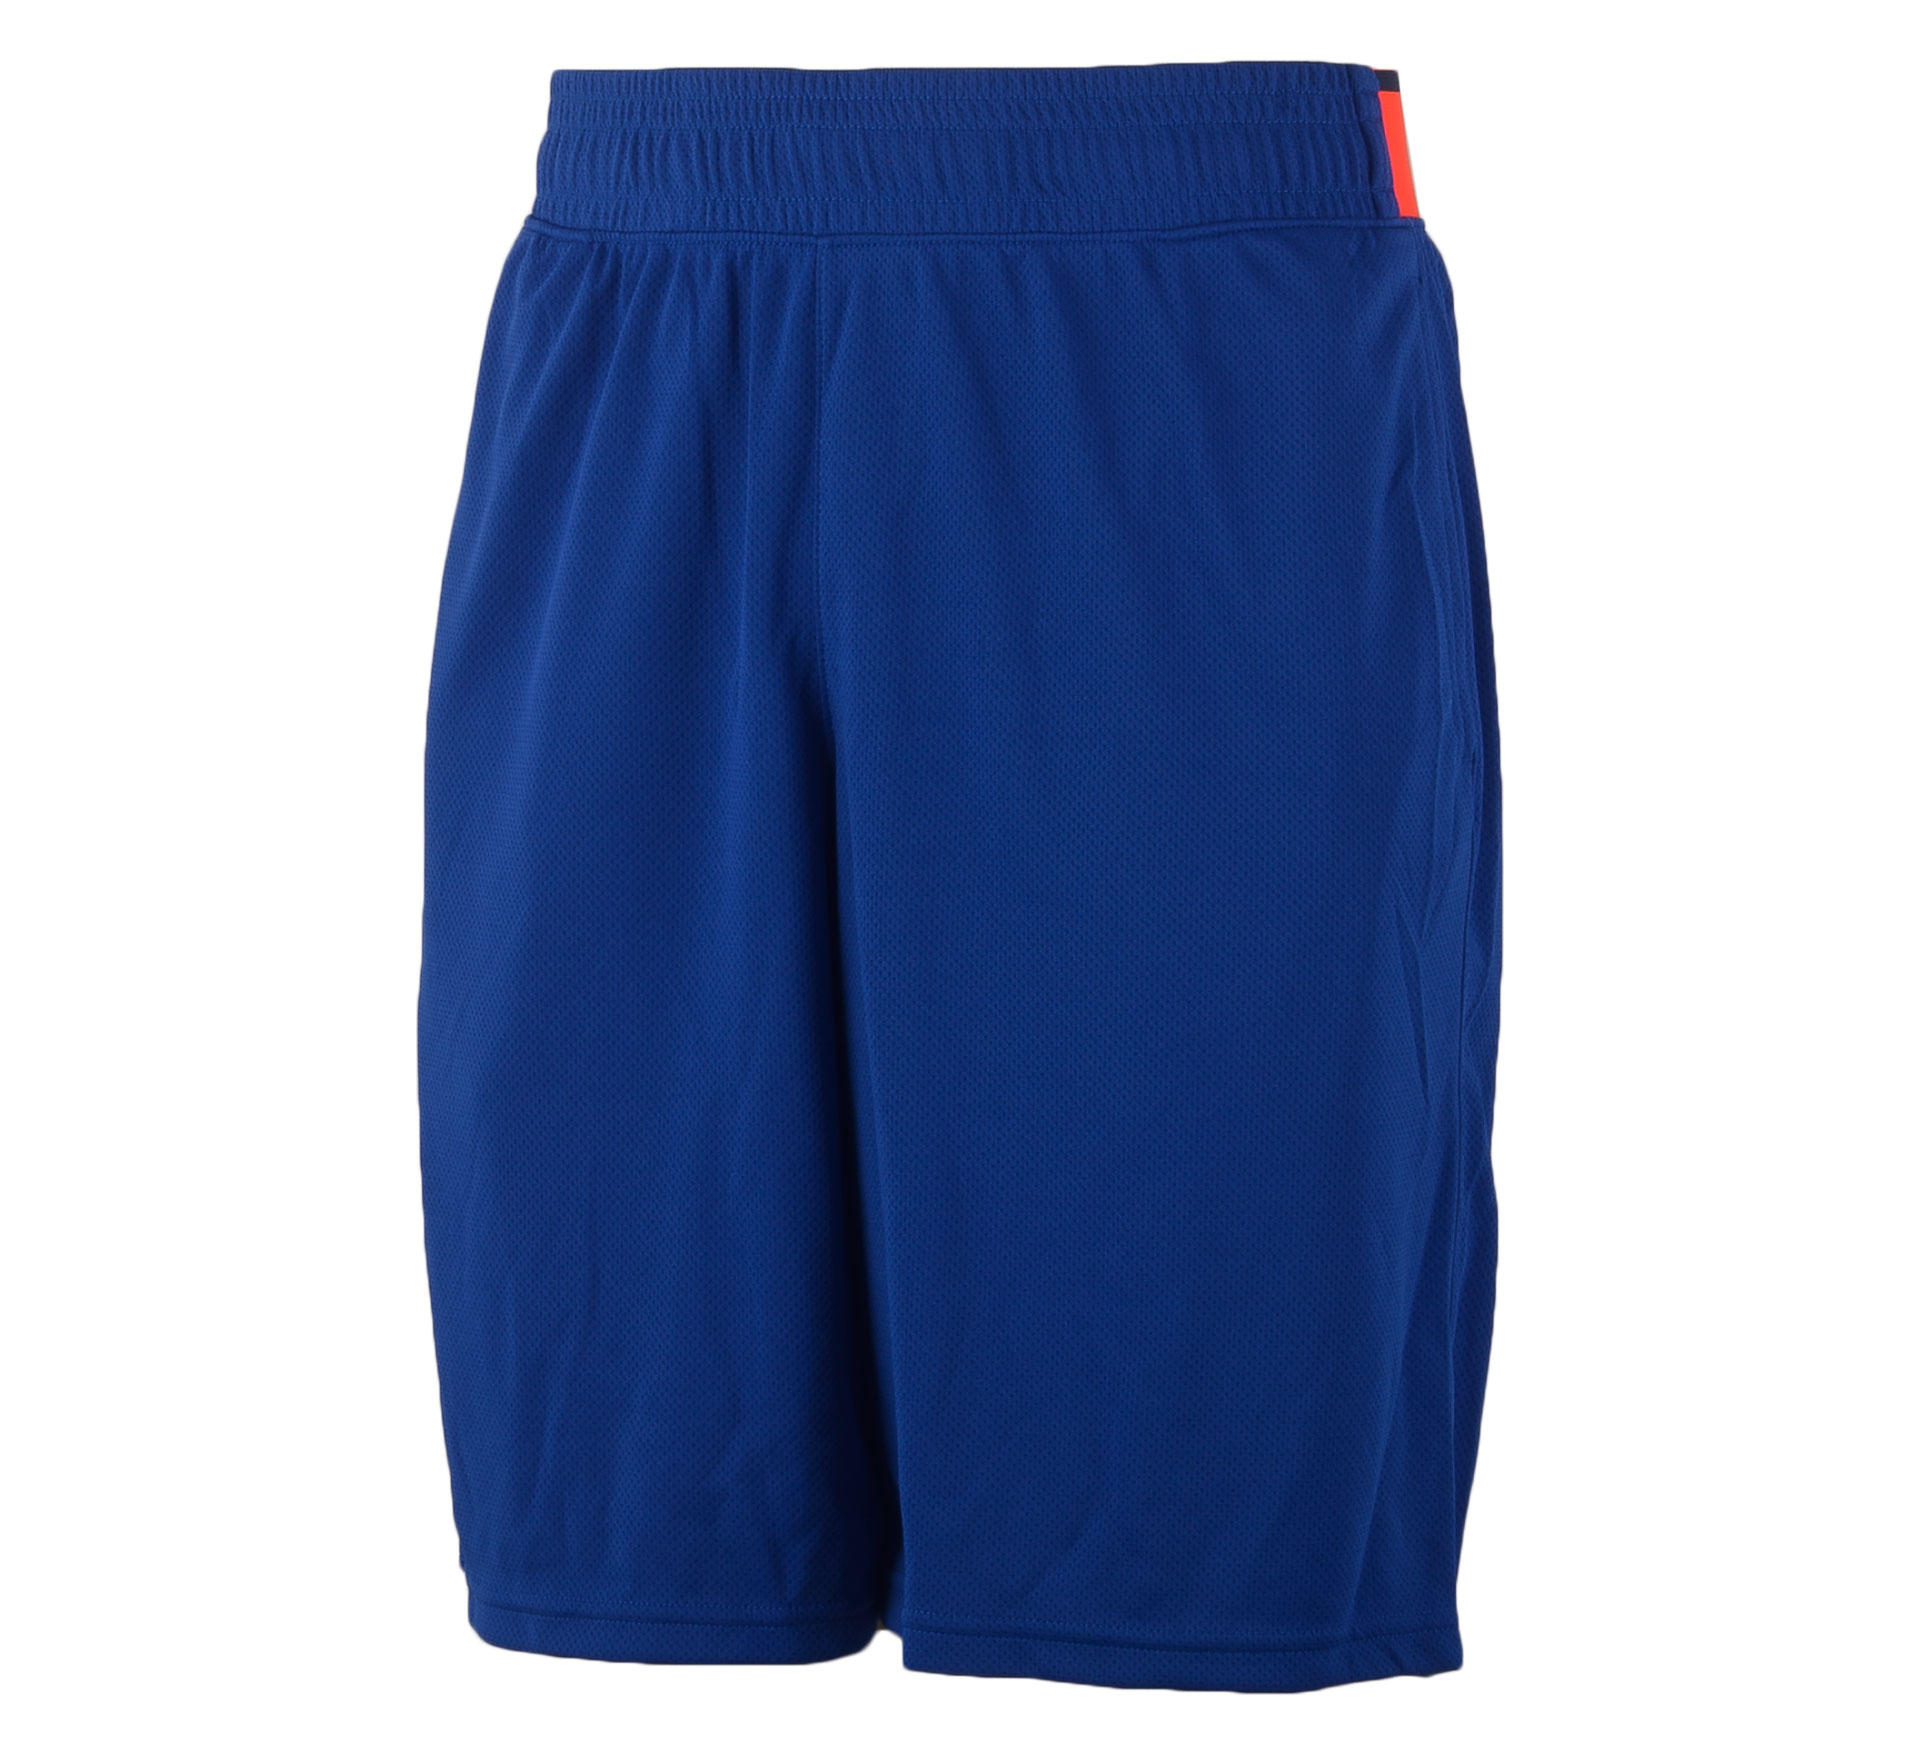 "Under Armour HeatGear Reflex 10"" Short blauw - rood"